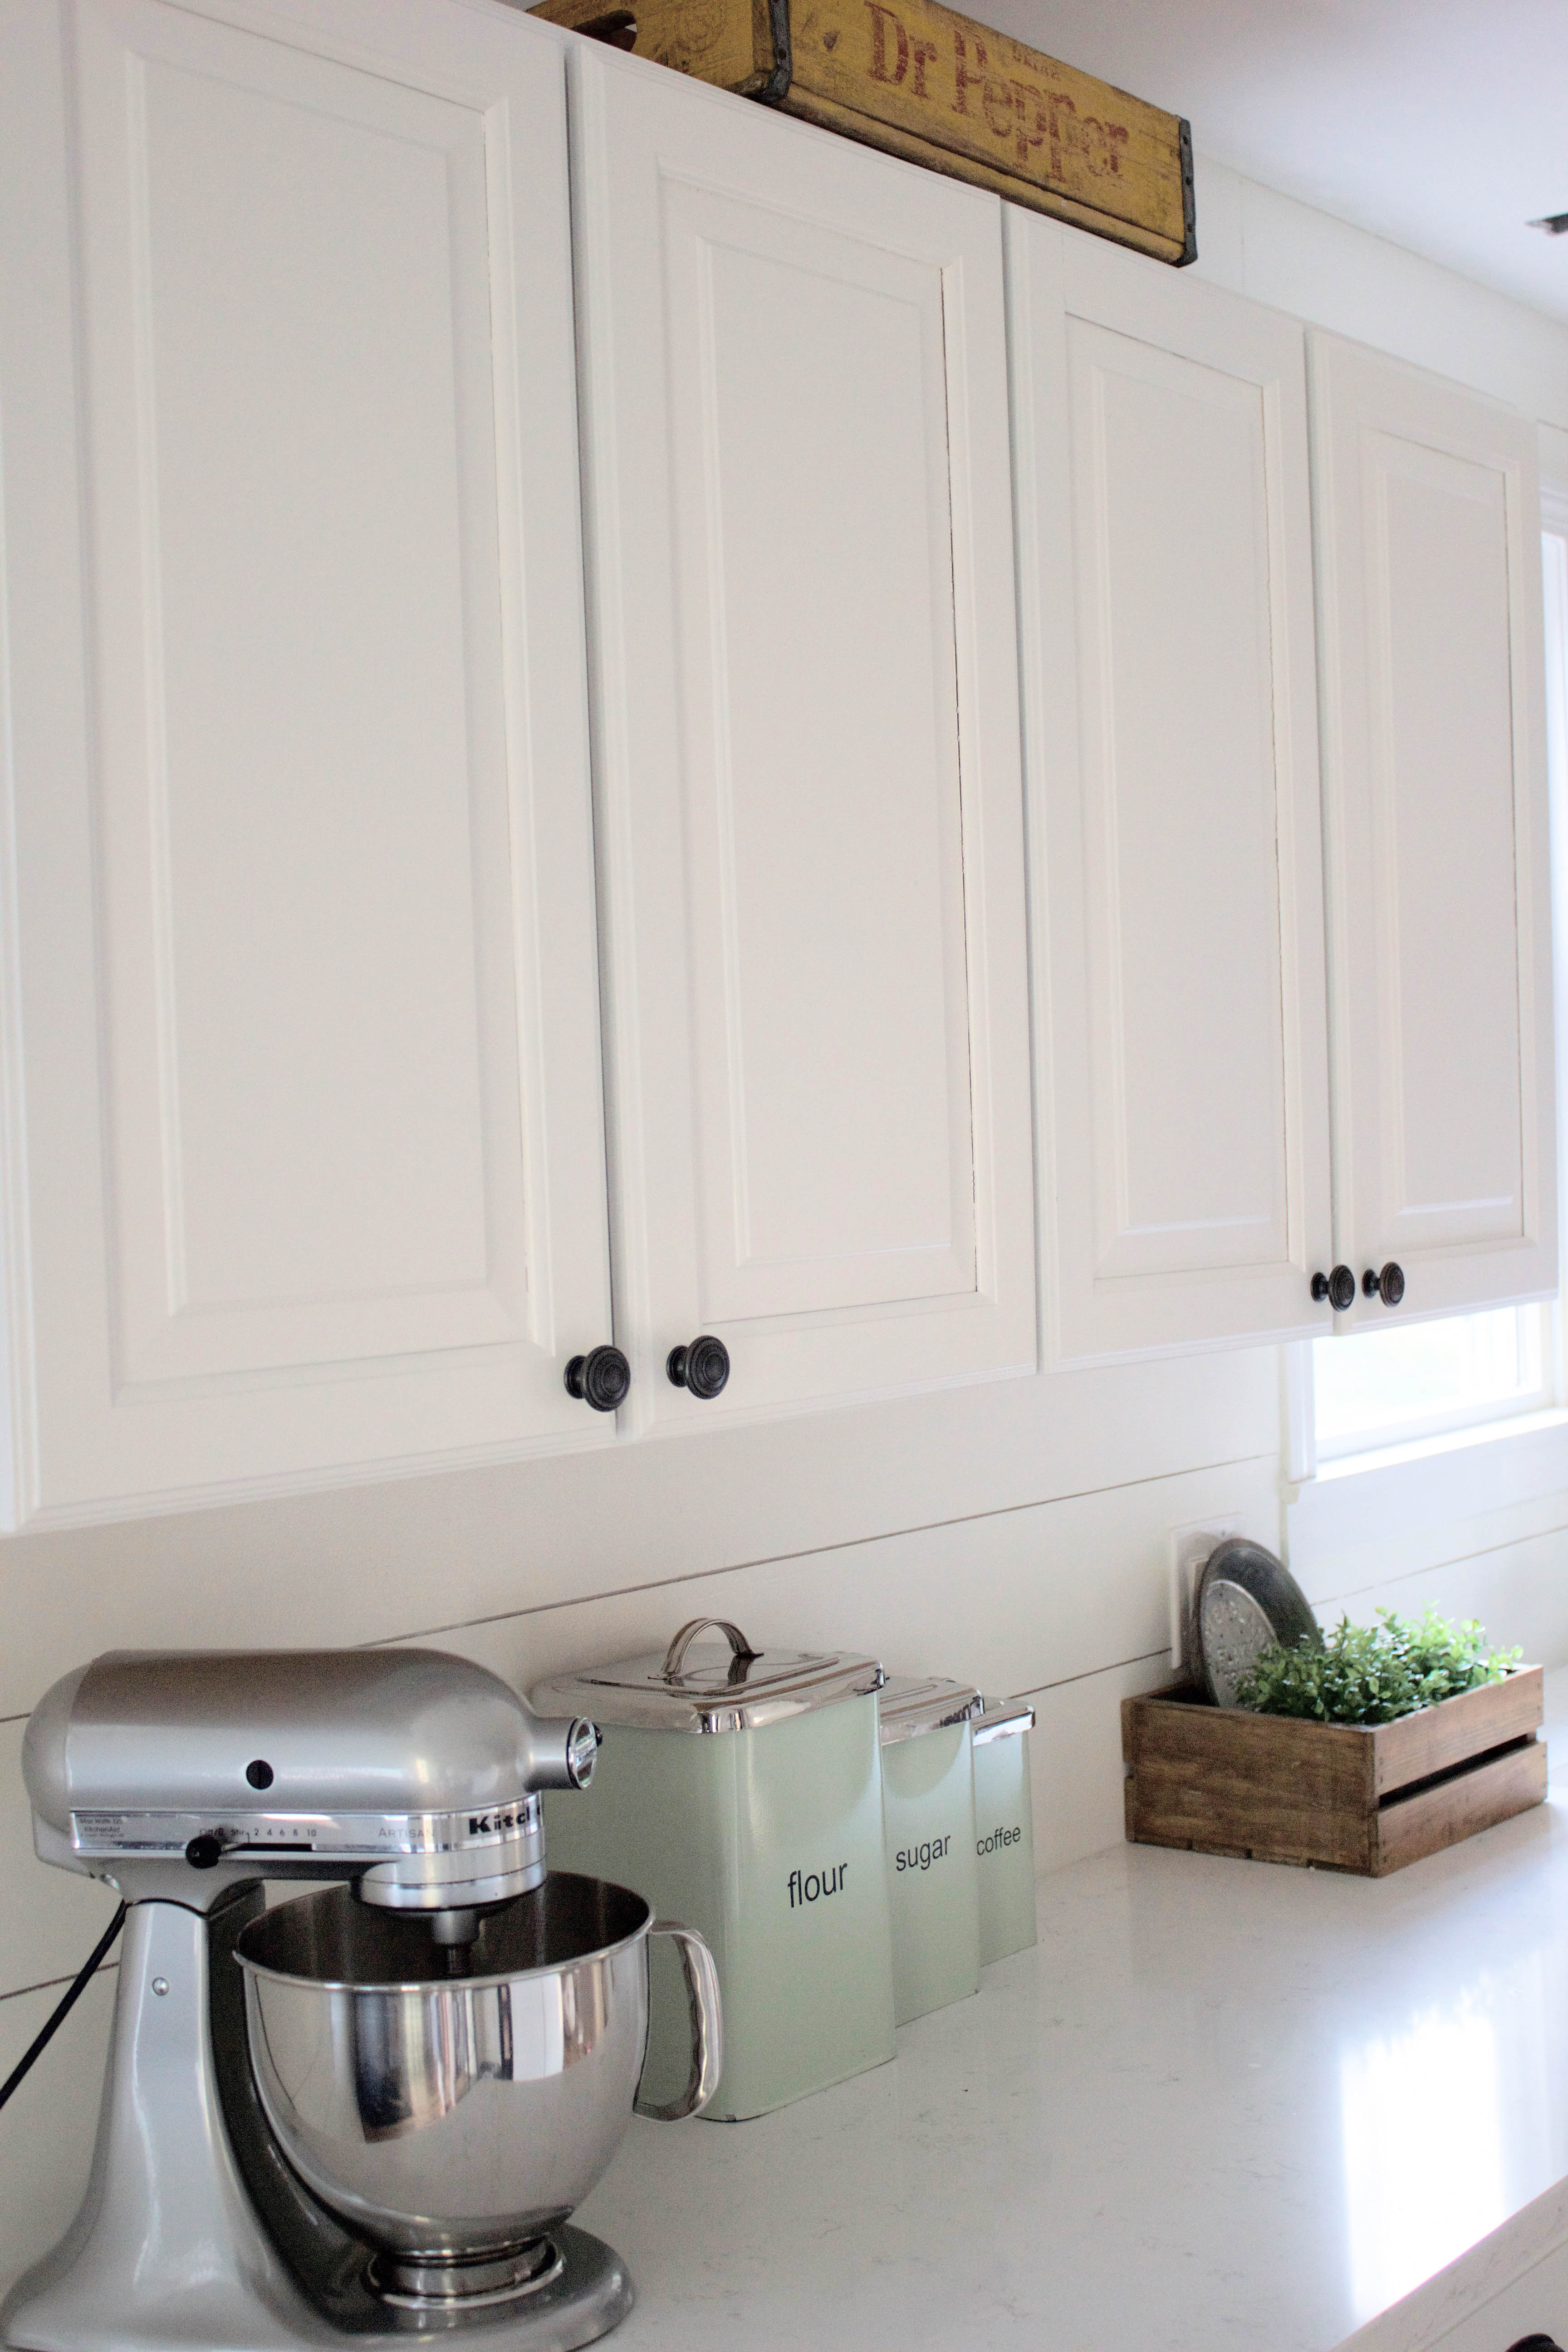 Home // How To Paint Kitchen Cabinets - Lauren McBride